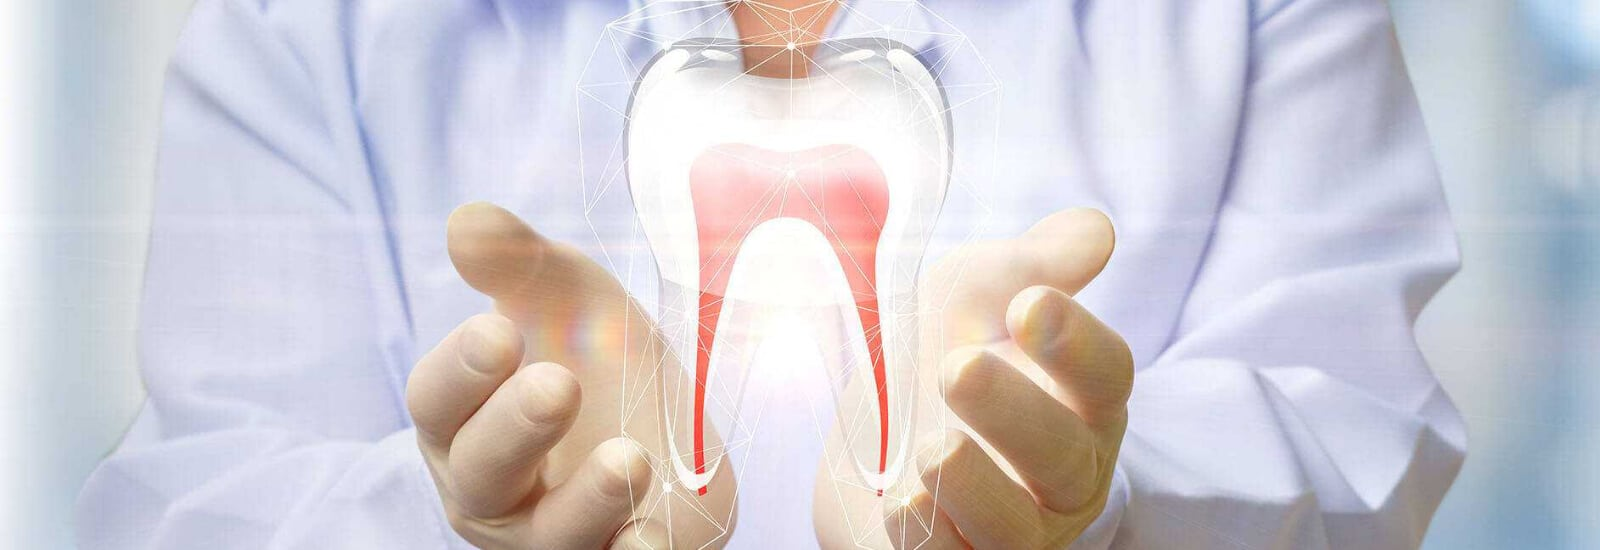 root canal therapy in ahmedabad